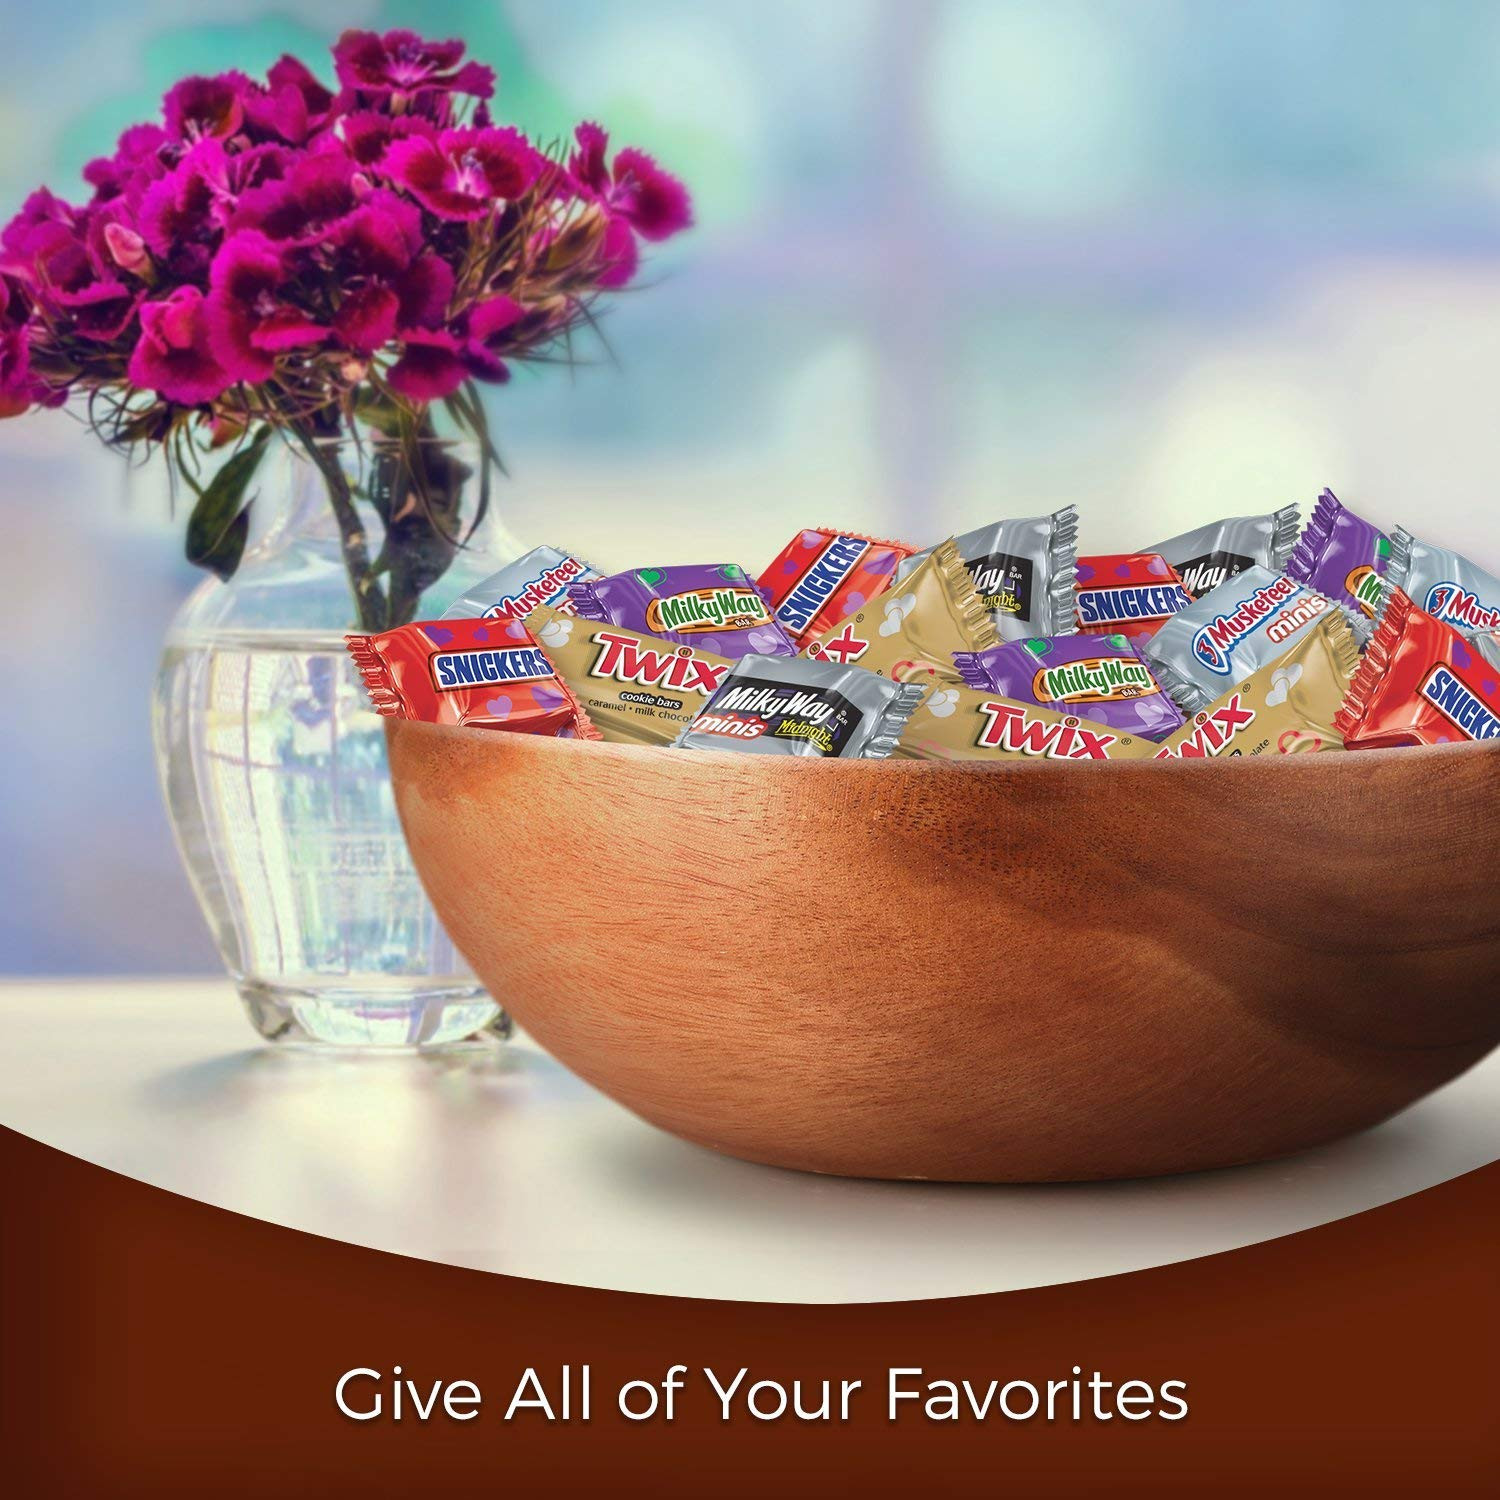 12 Popular Candy Bar Vases wholesale 2021 free download candy bar vases wholesale of amazon com mars chocolate valentines minis size candy variety mix with amazon com mars chocolate valentines minis size candy variety mix 24 89 ounce bag grocery